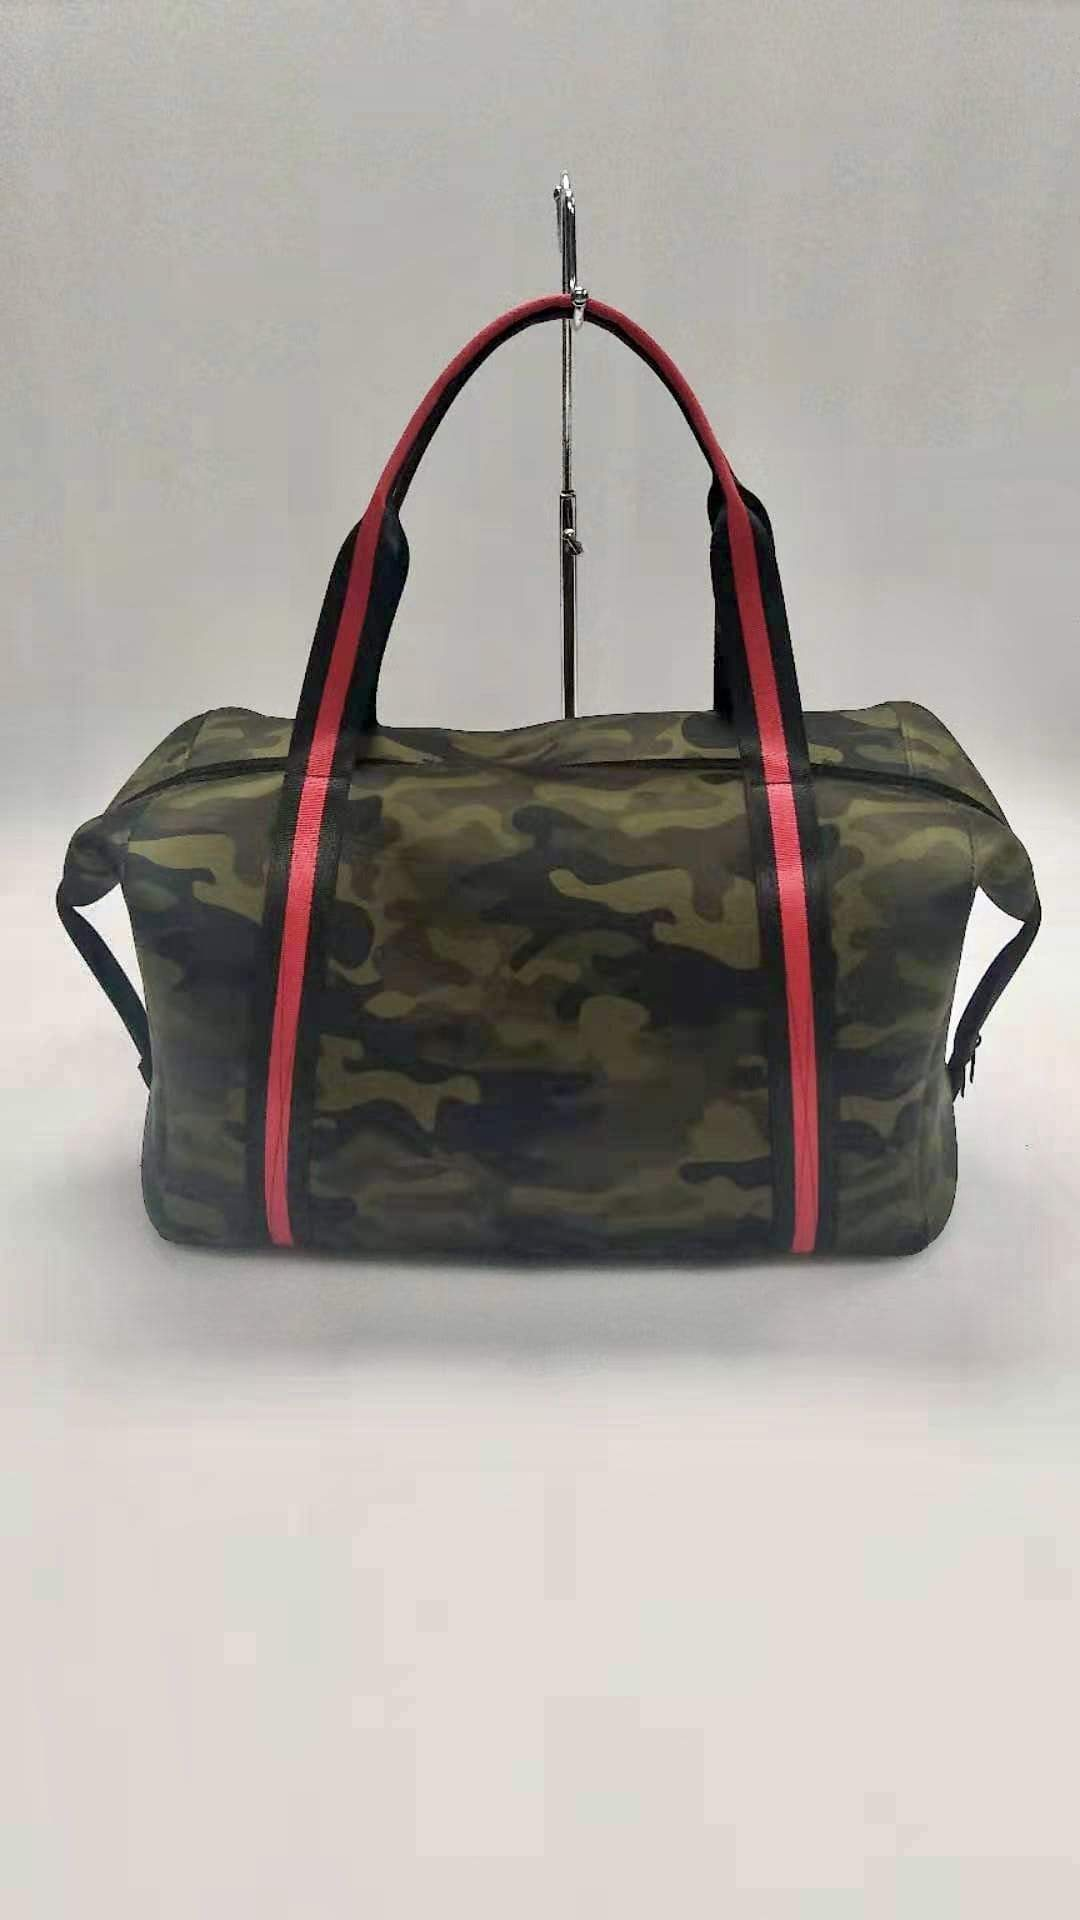 Haute Shore Bags Jet Morgan Weekender equestrian team apparel online tack store mobile tack store custom farm apparel custom show stable clothing equestrian lifestyle horse show clothing riding clothes horses equestrian tack store